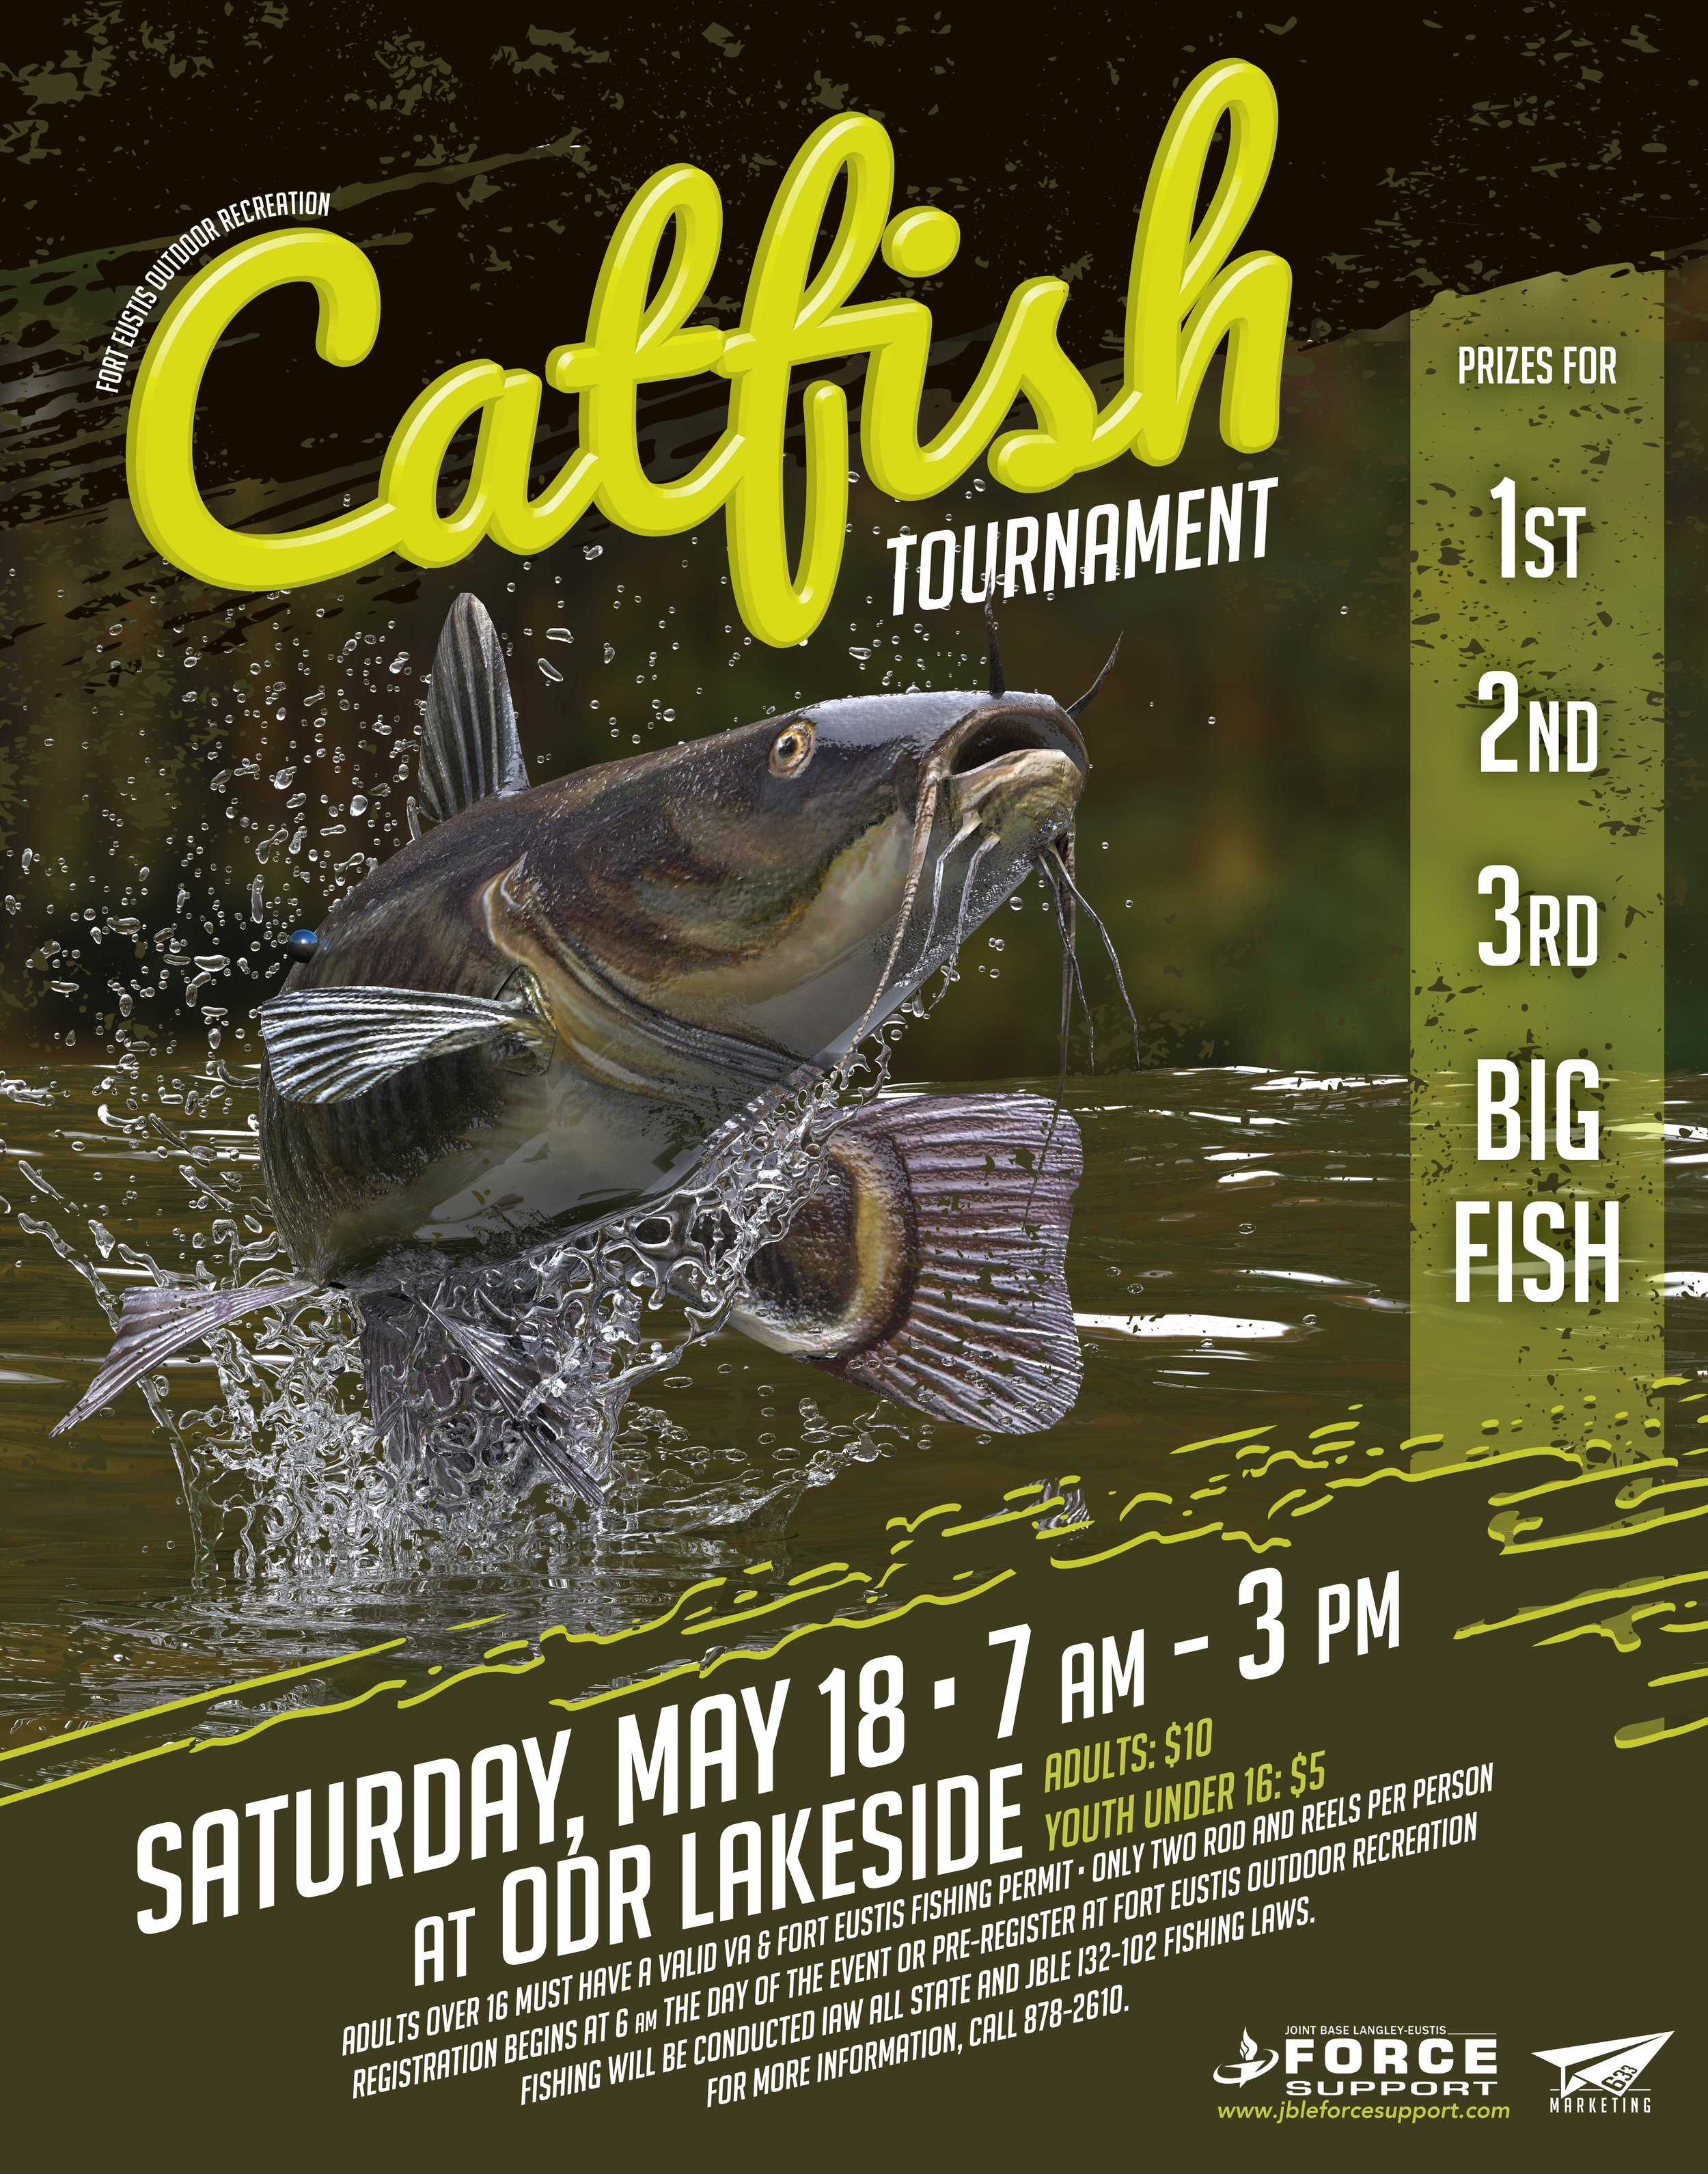 05-19 Catfish Tournament.jpg